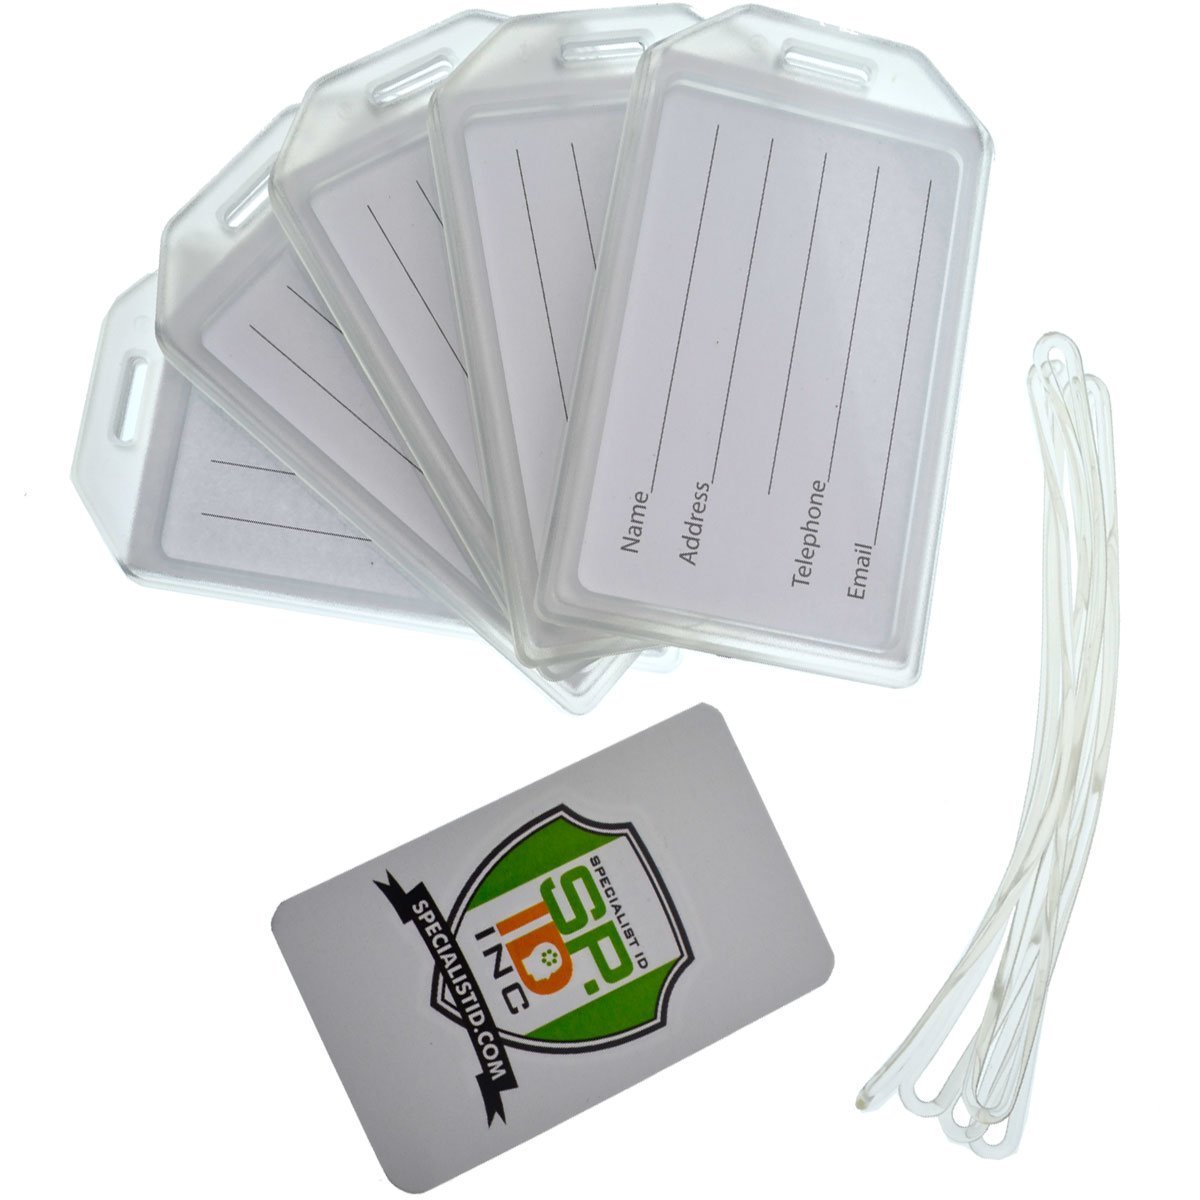 5 Pack Of Premium Hard Plastic Luggage Tags With 6 Quot Worm